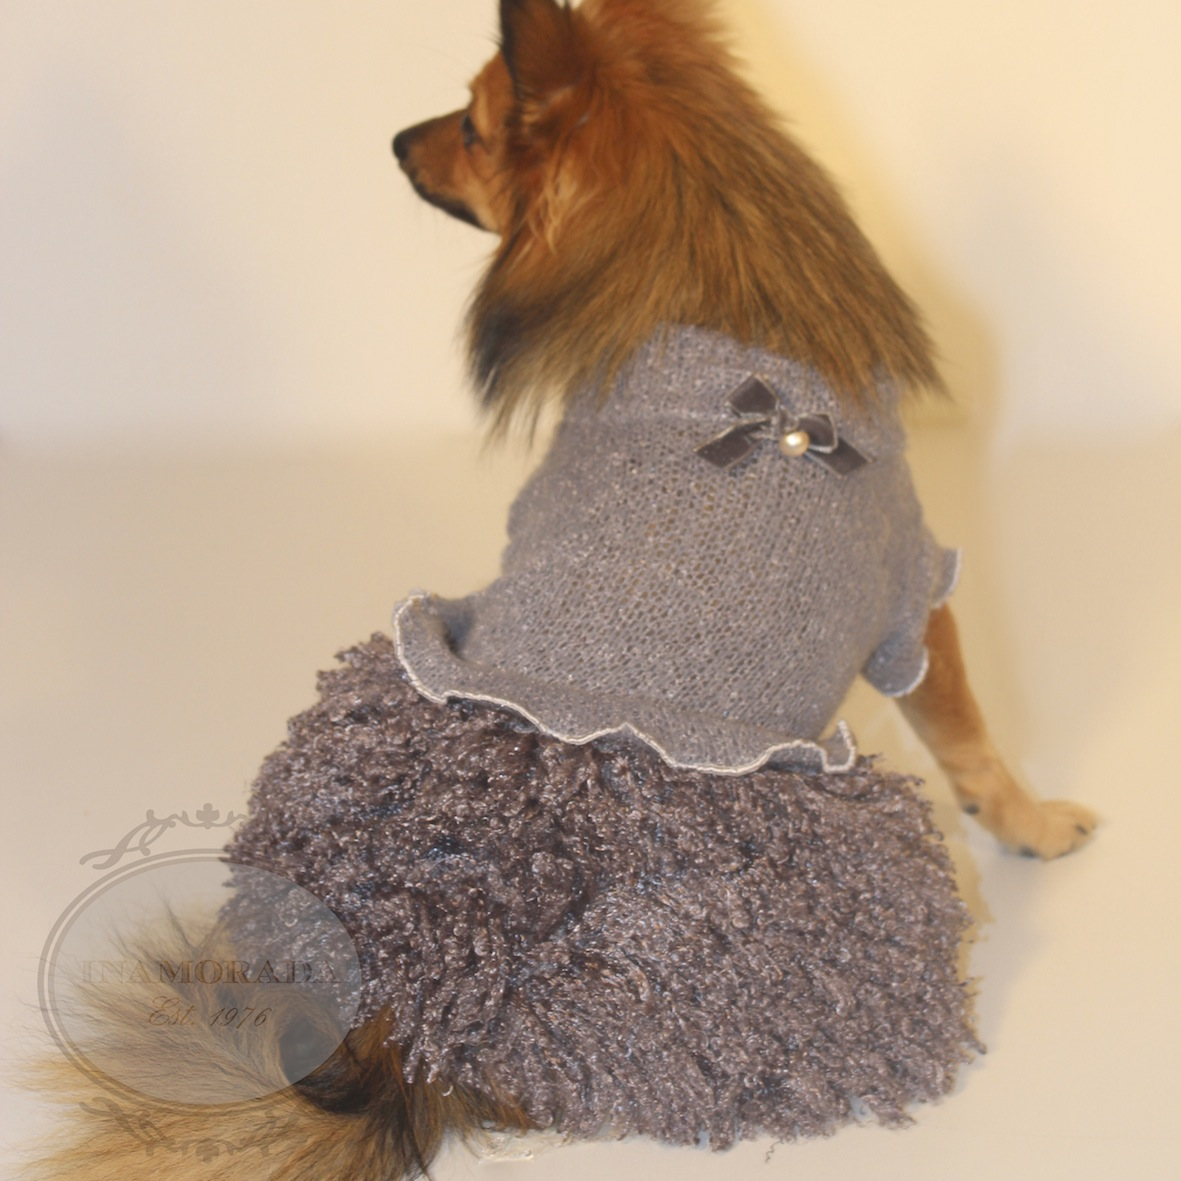 Inamorada Celebrating Milan Fashion Week With Luxury Dog Clothes From Italy Bark And Swagger